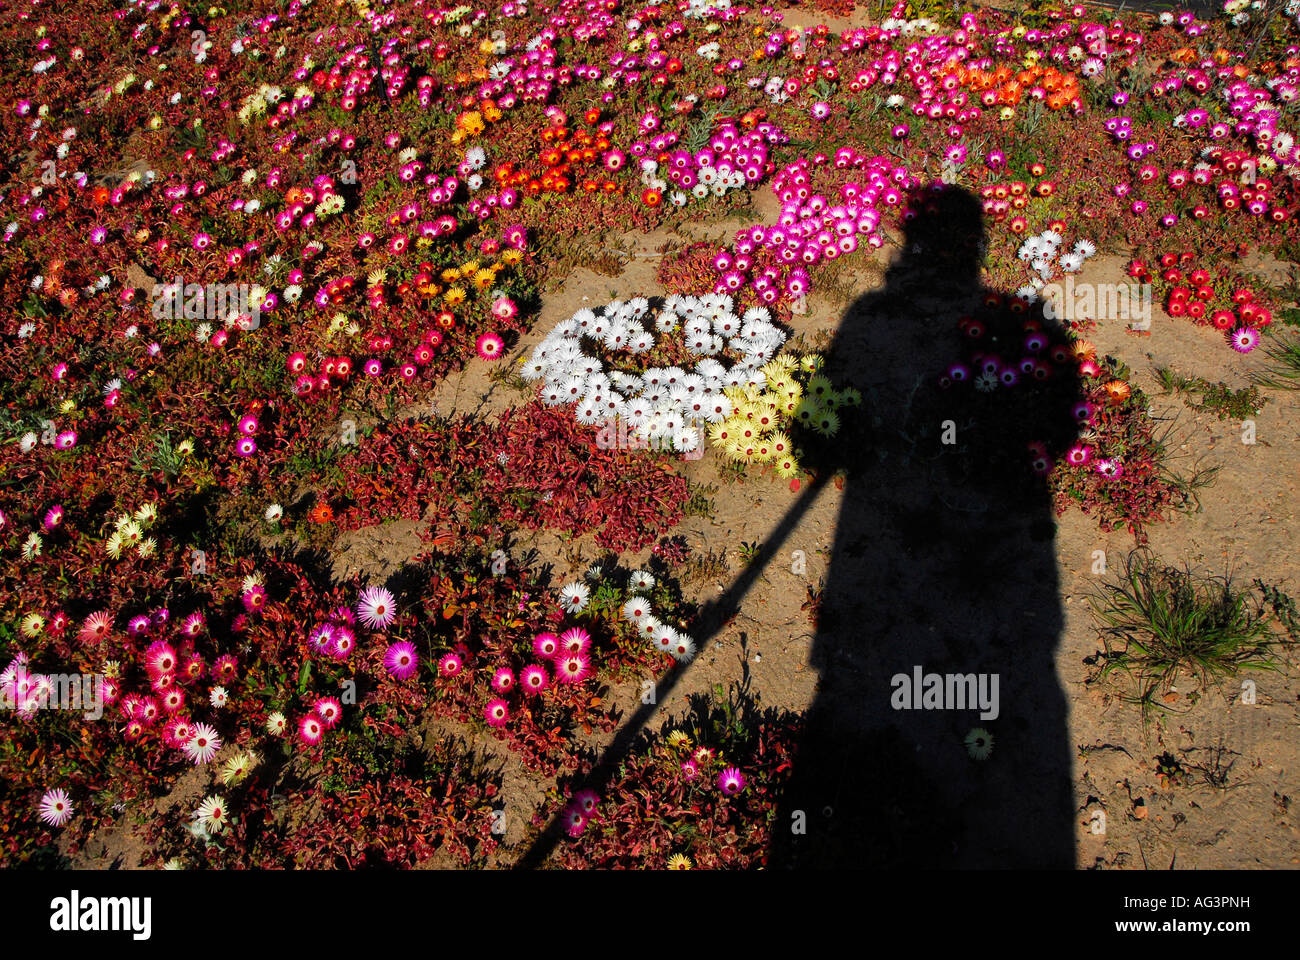 Shadow of photographer falling on patch of stunning bokbaai vygies, an annual succulent that flowers in August in - Stock Image